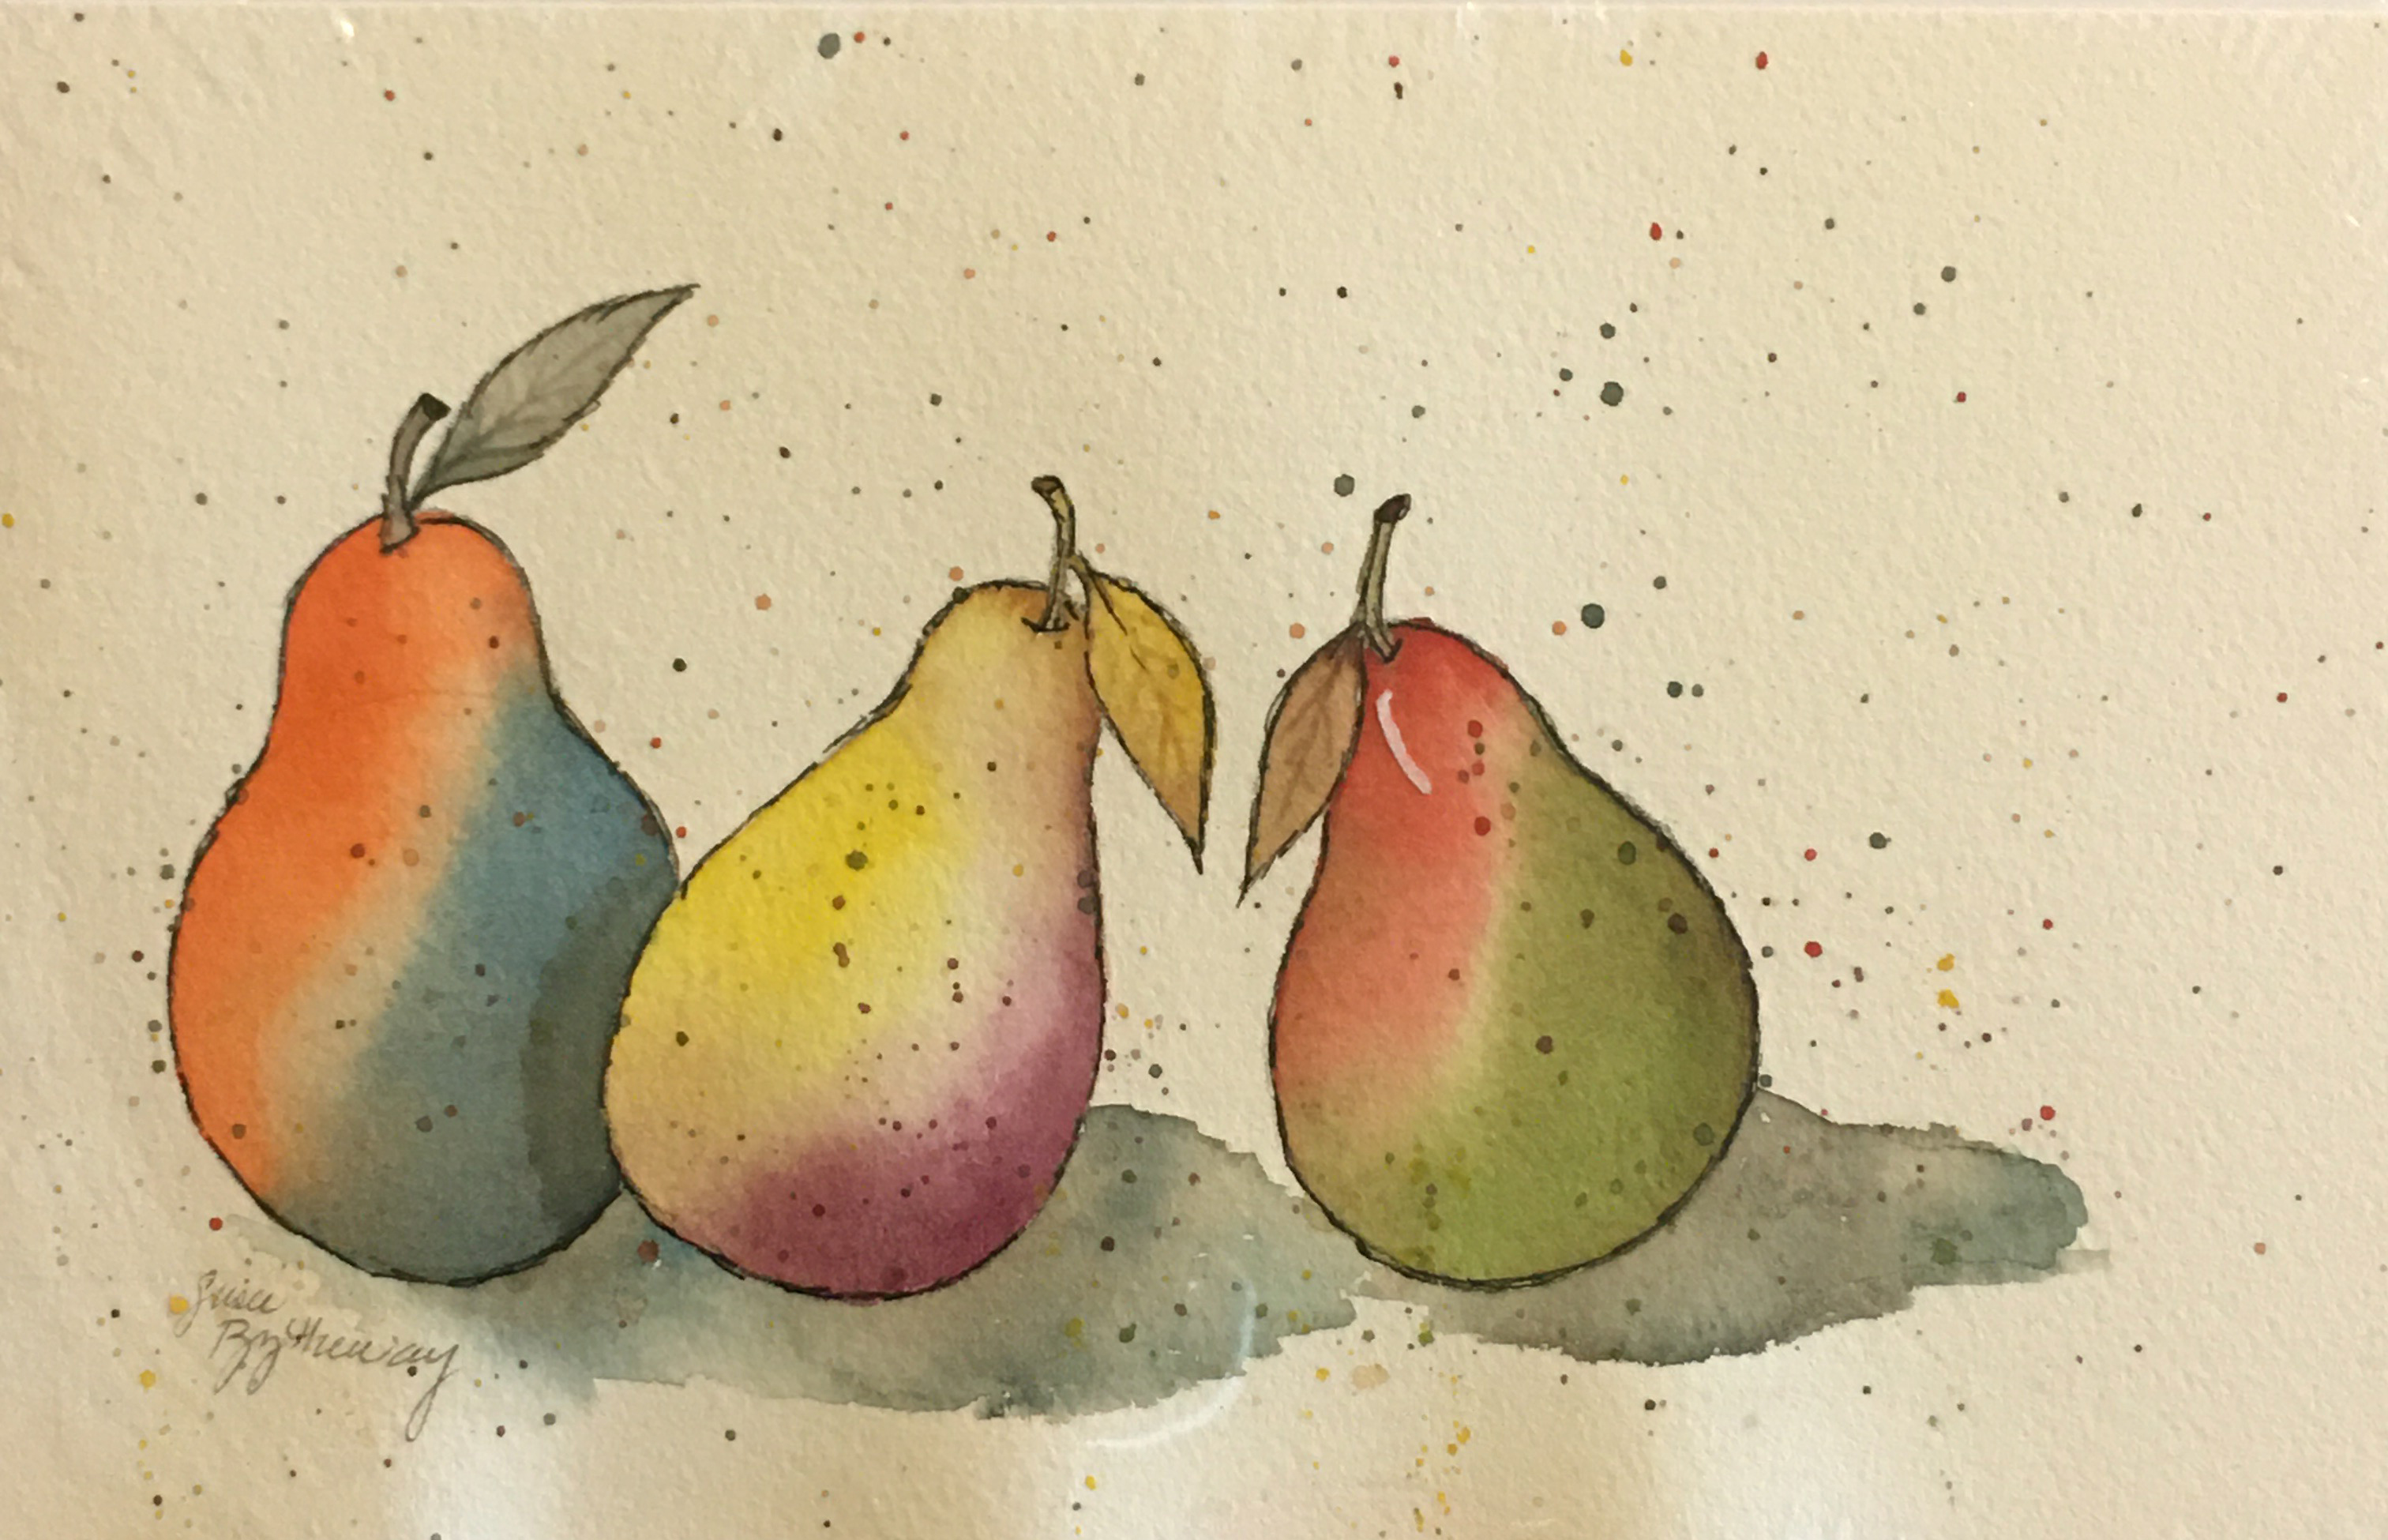 COMPLEMENTARY PEARS